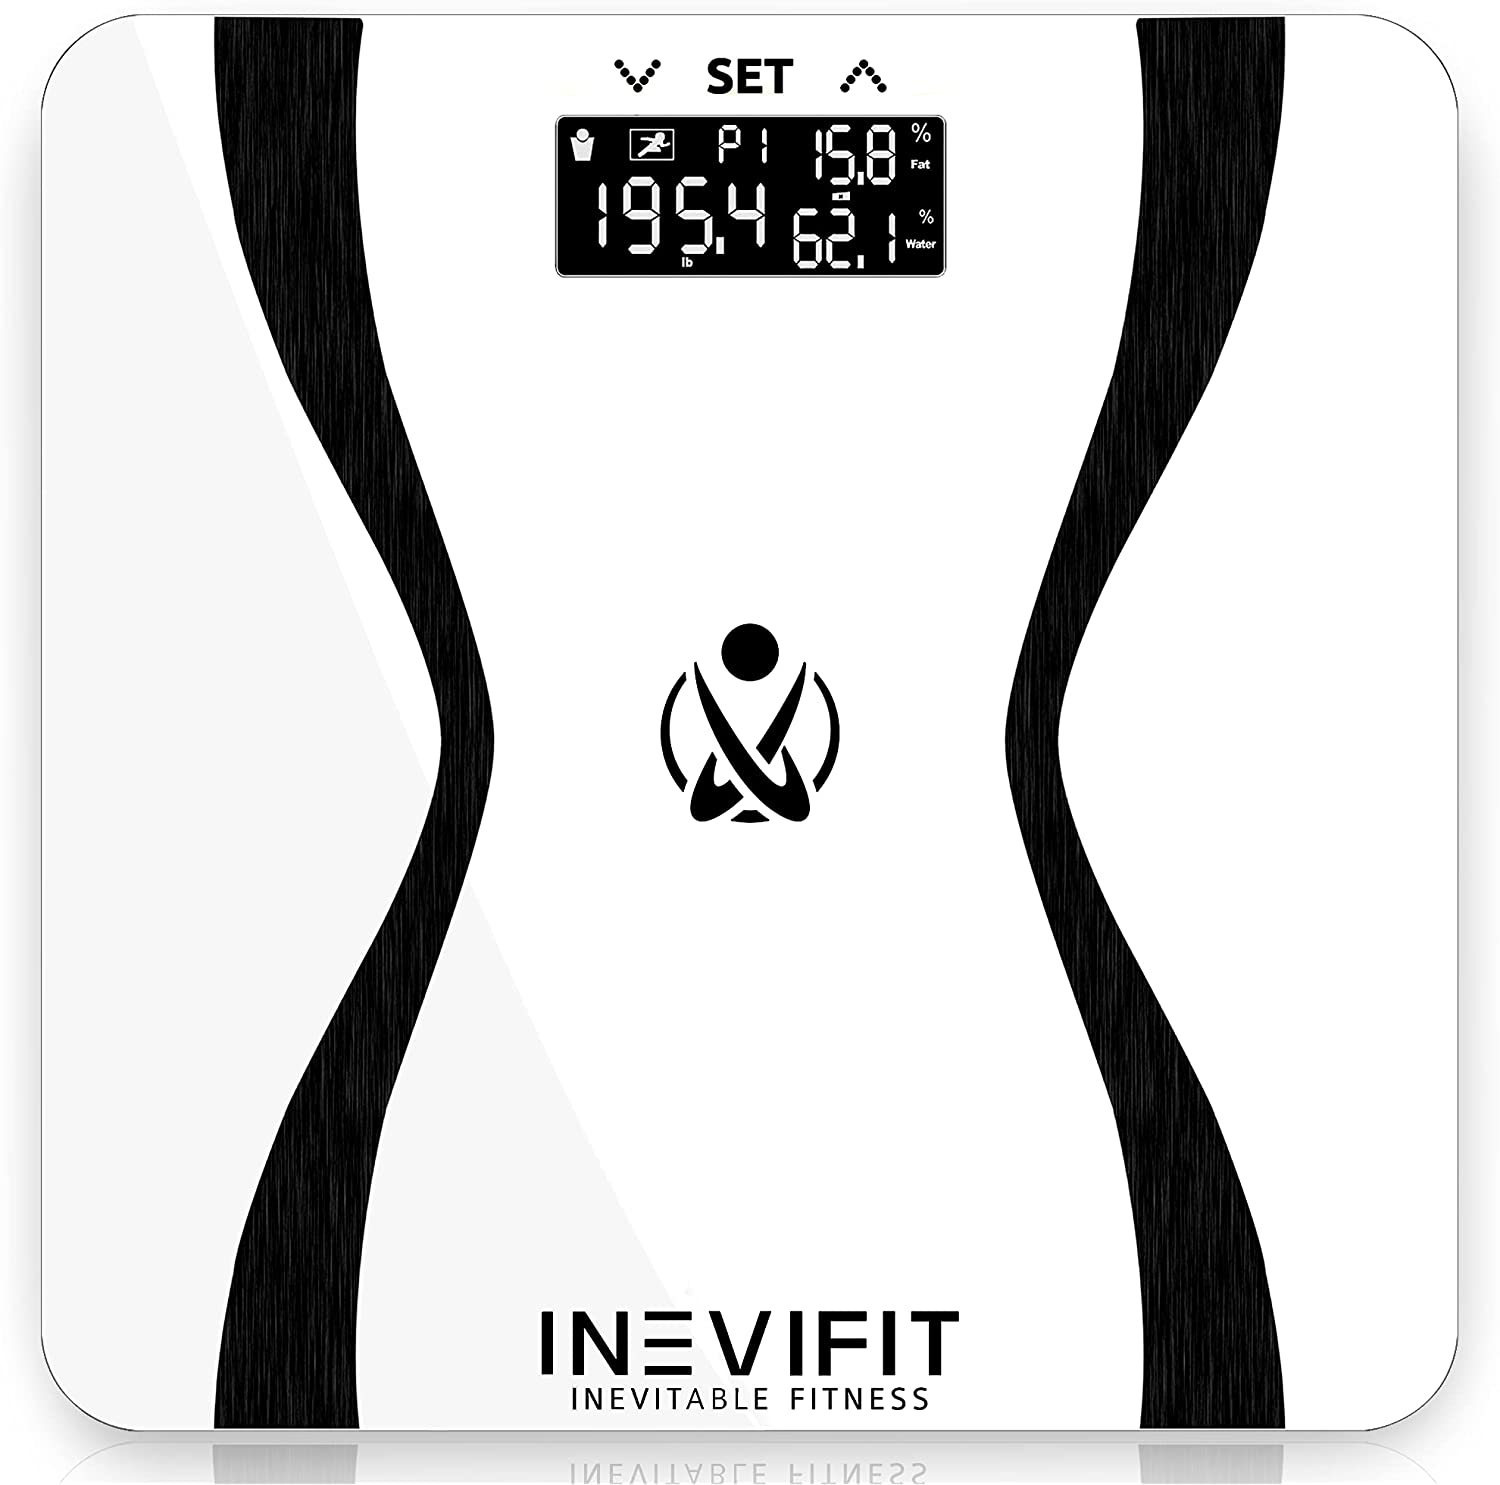 INEVIFIT Body-Analyzer Scale, Highly Accurate Digital Bathroom Body Composition Analyzer, Measures Weight, Body Fat, Water, Muscle & Bone Mass for 10 Users. Includes Batteries: Health & Personal Care